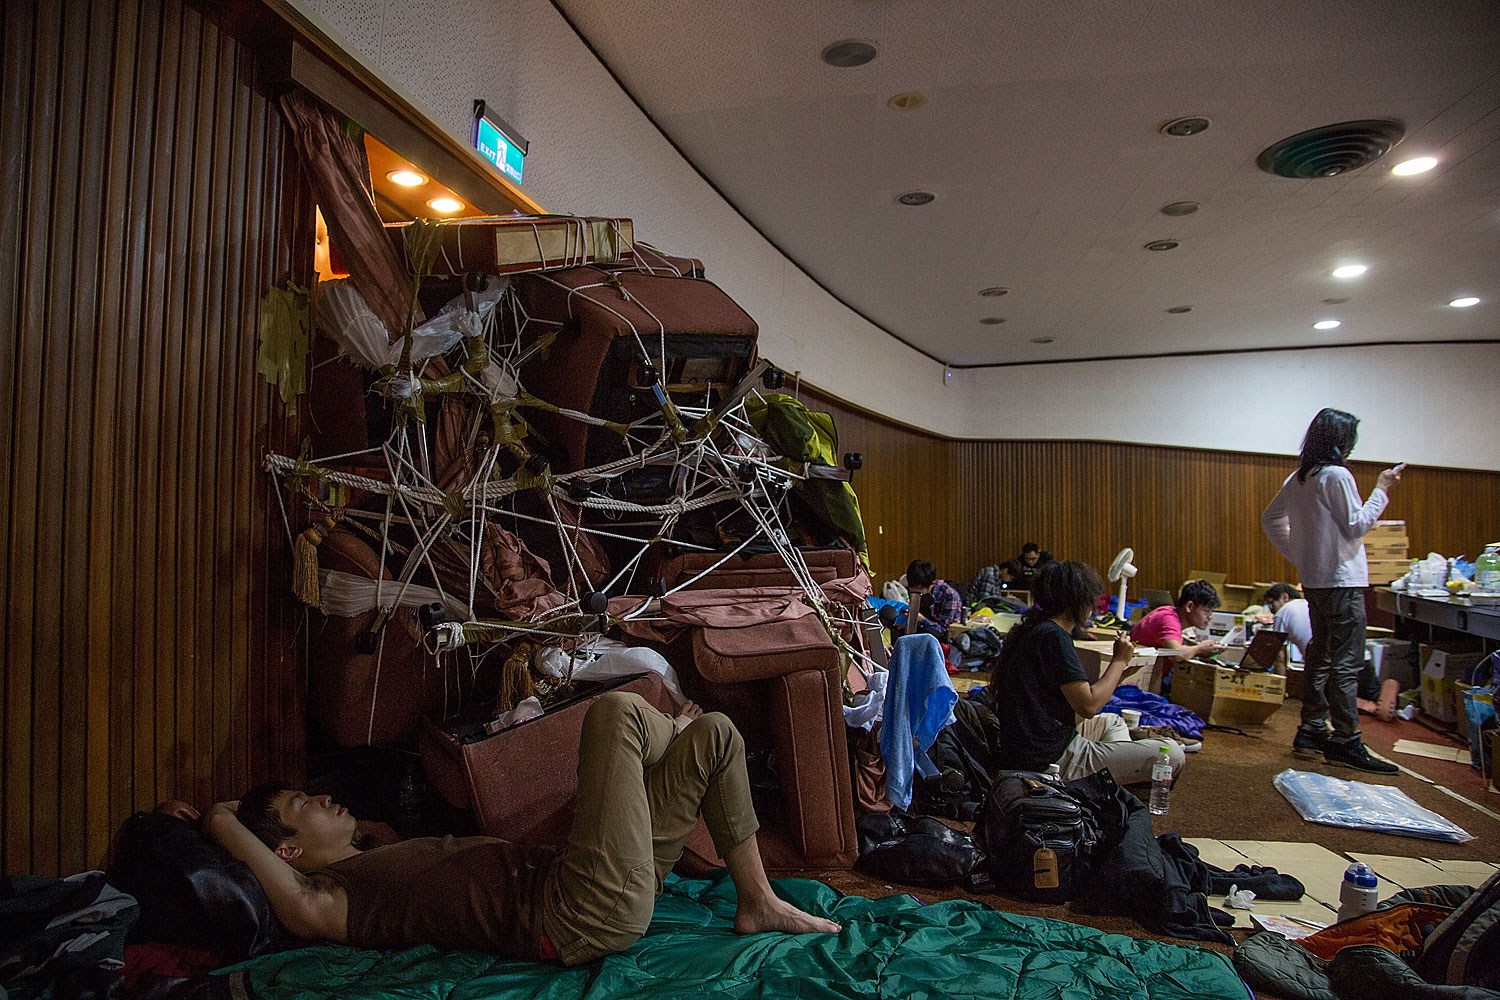 Student protesters occupy the legislature the day after the clash with riot police at the Executive Yuan on March 24, 2014 in Taipei, Taiwan.